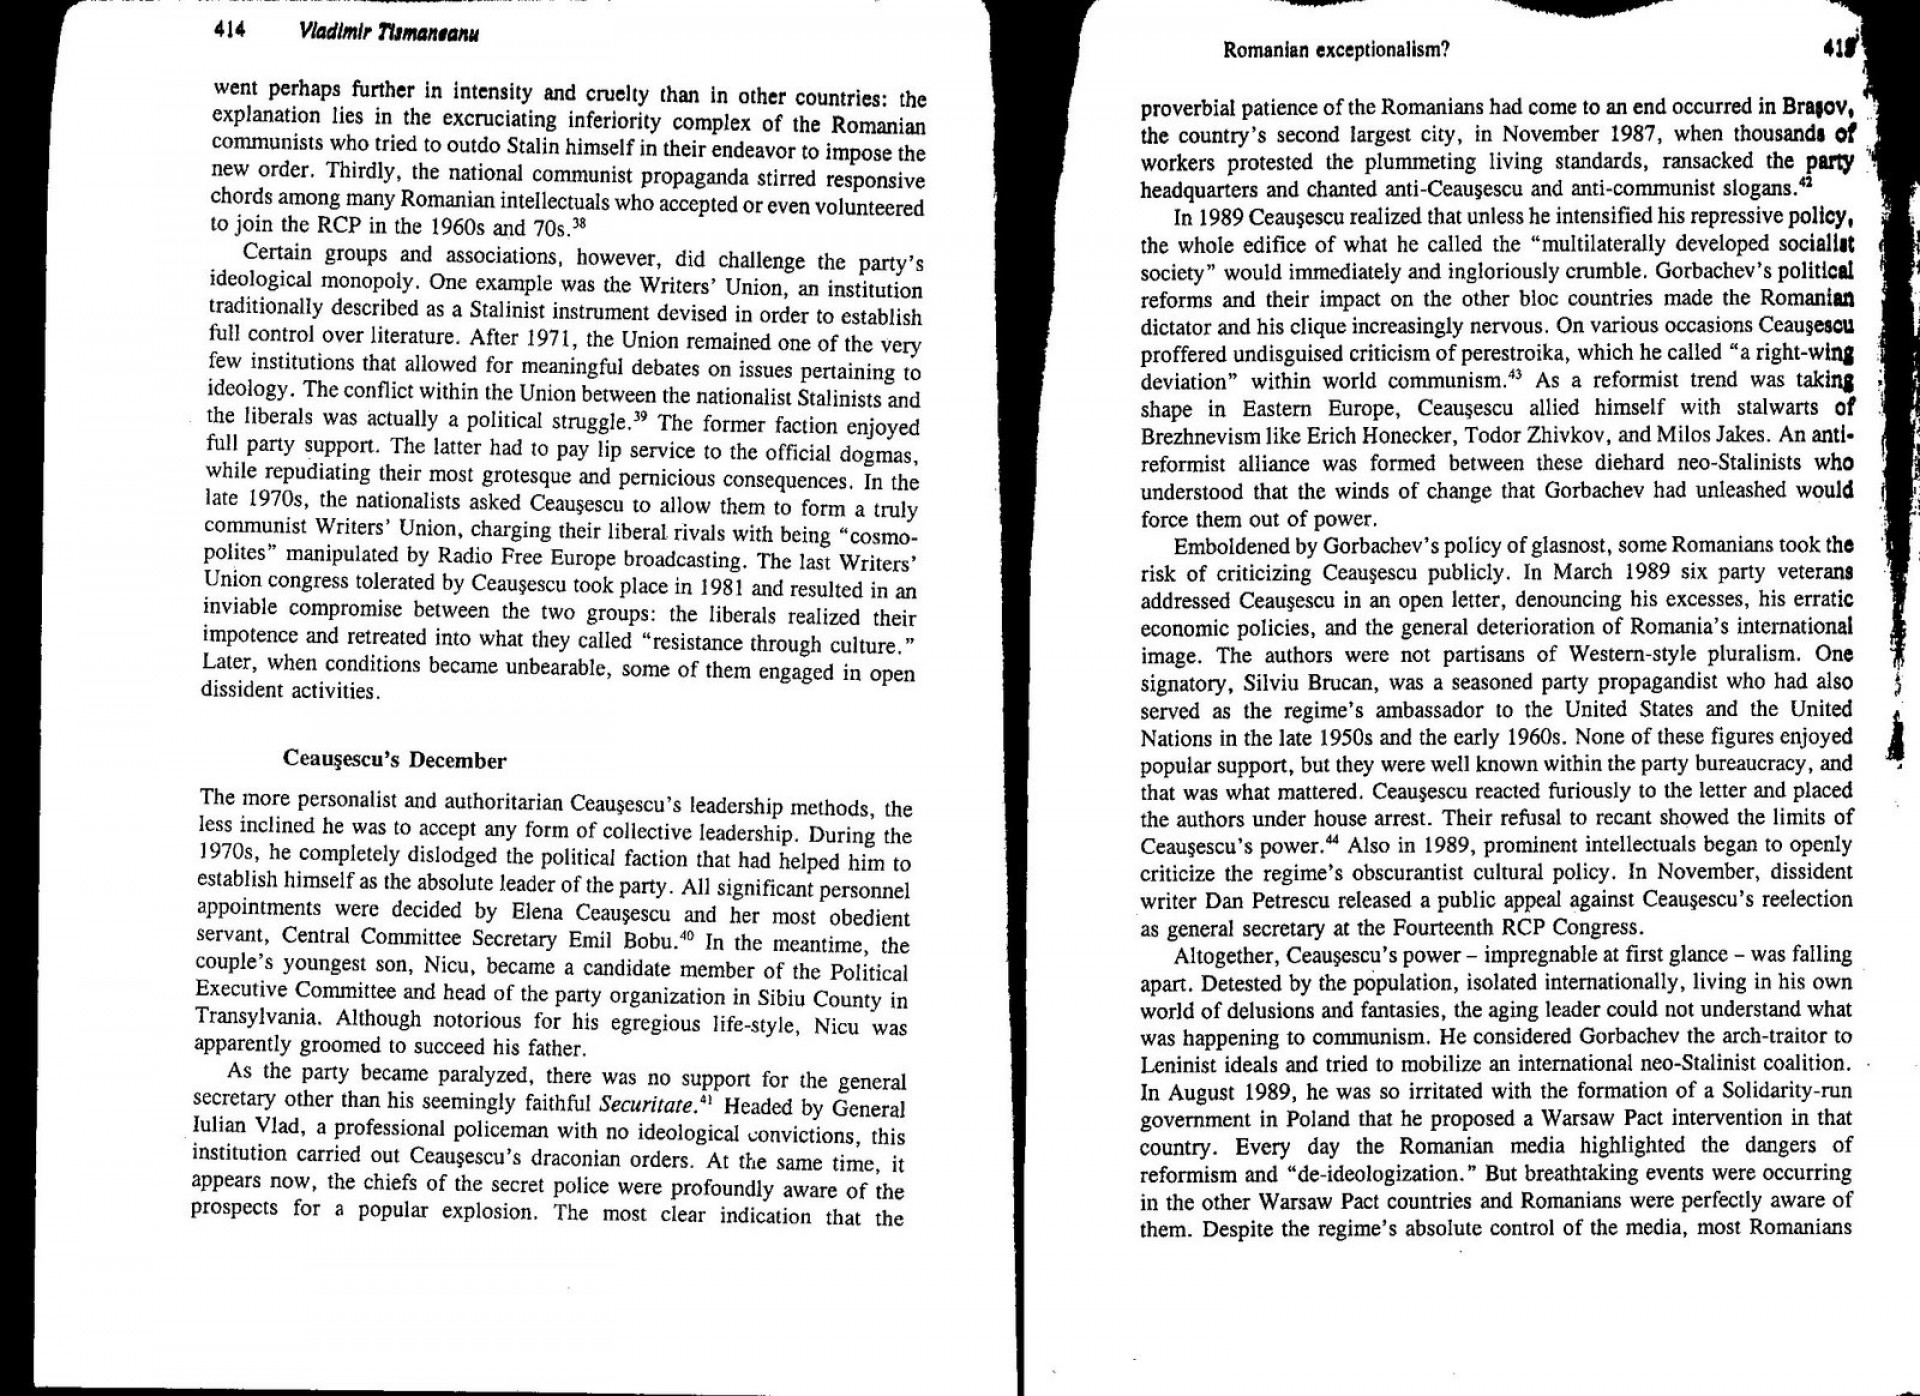 005 Image4 Essay Example Fearsome 3 Page On Gun Control Double Spaced Word Count 1920